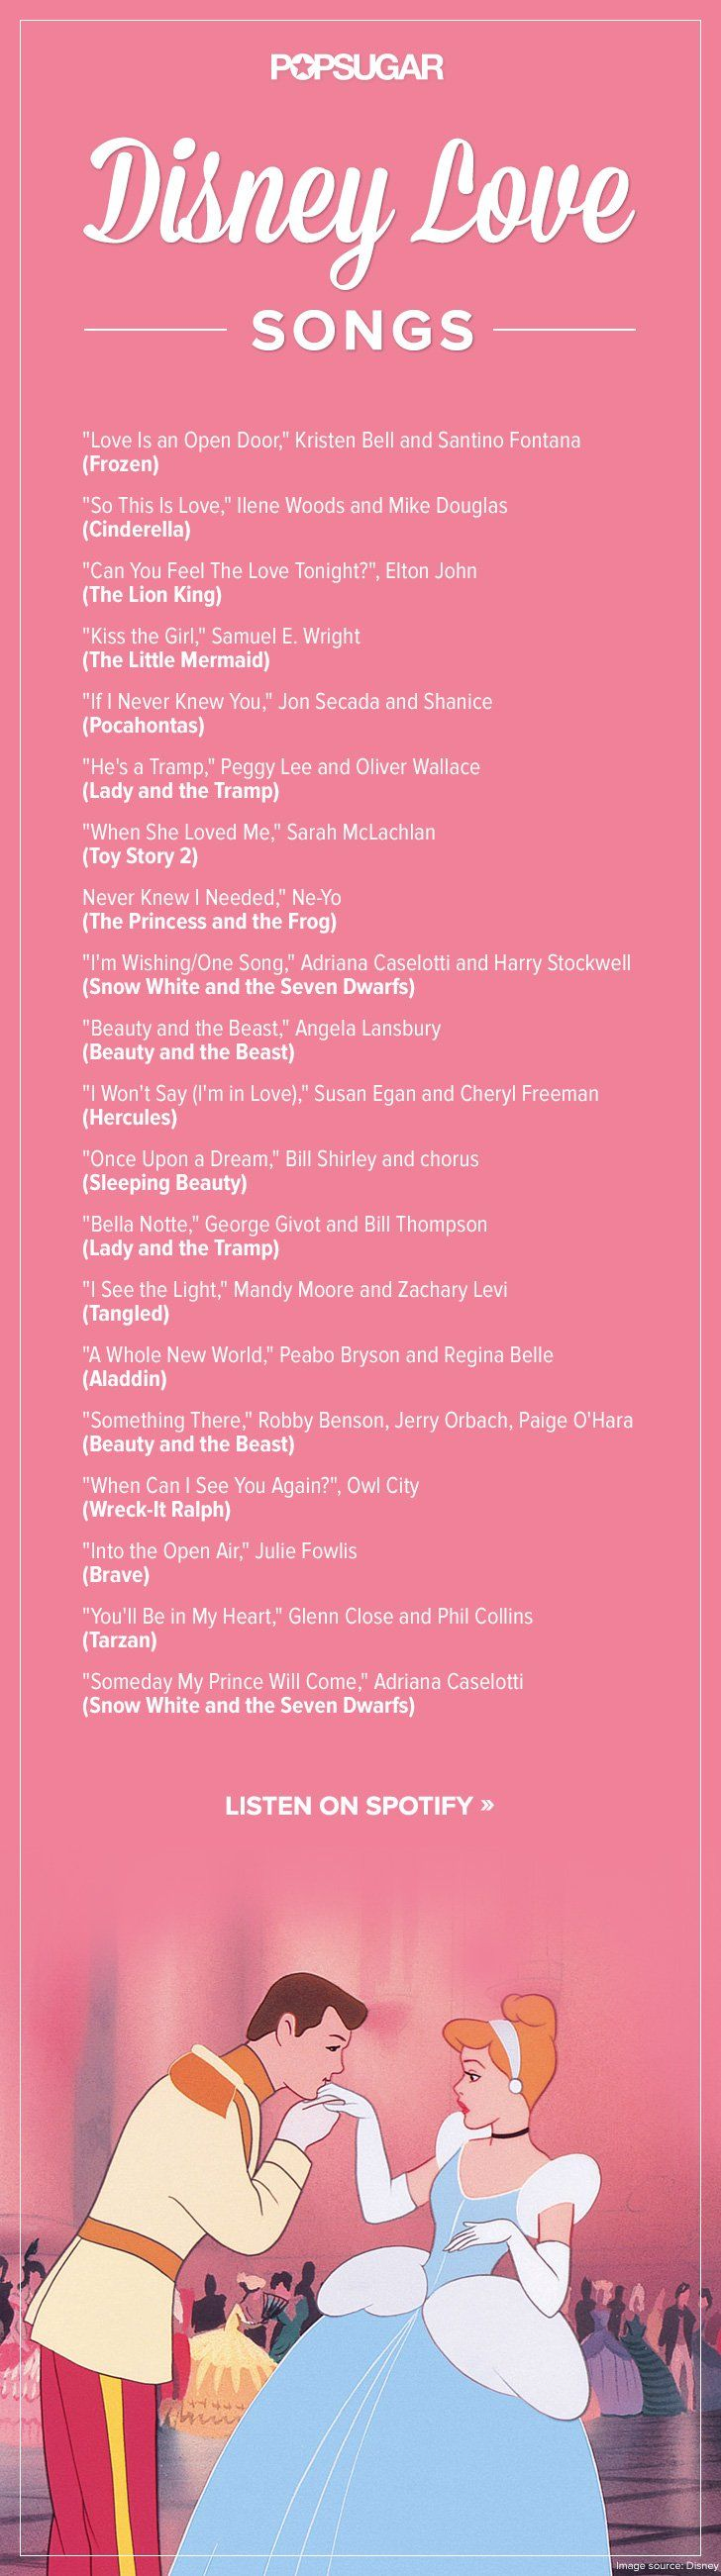 THE PERFECT spotify PLAYLIST, DISNEY ROMANCE SONGS!!!!!!!______Feel the Love Tonight With This Romantic Disney Playlist